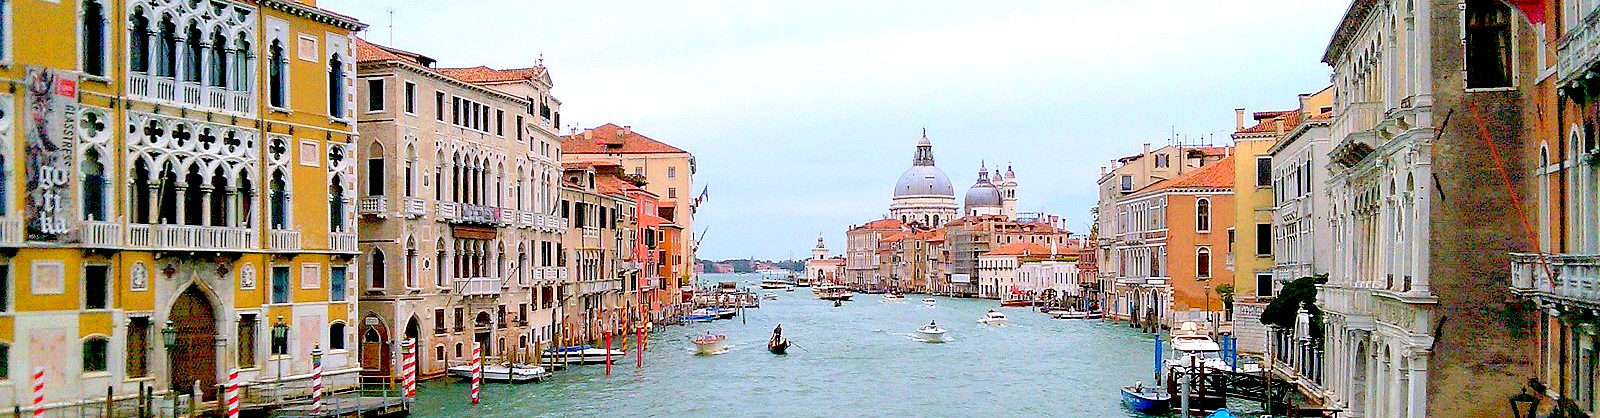 Venice - Bicycling Italy